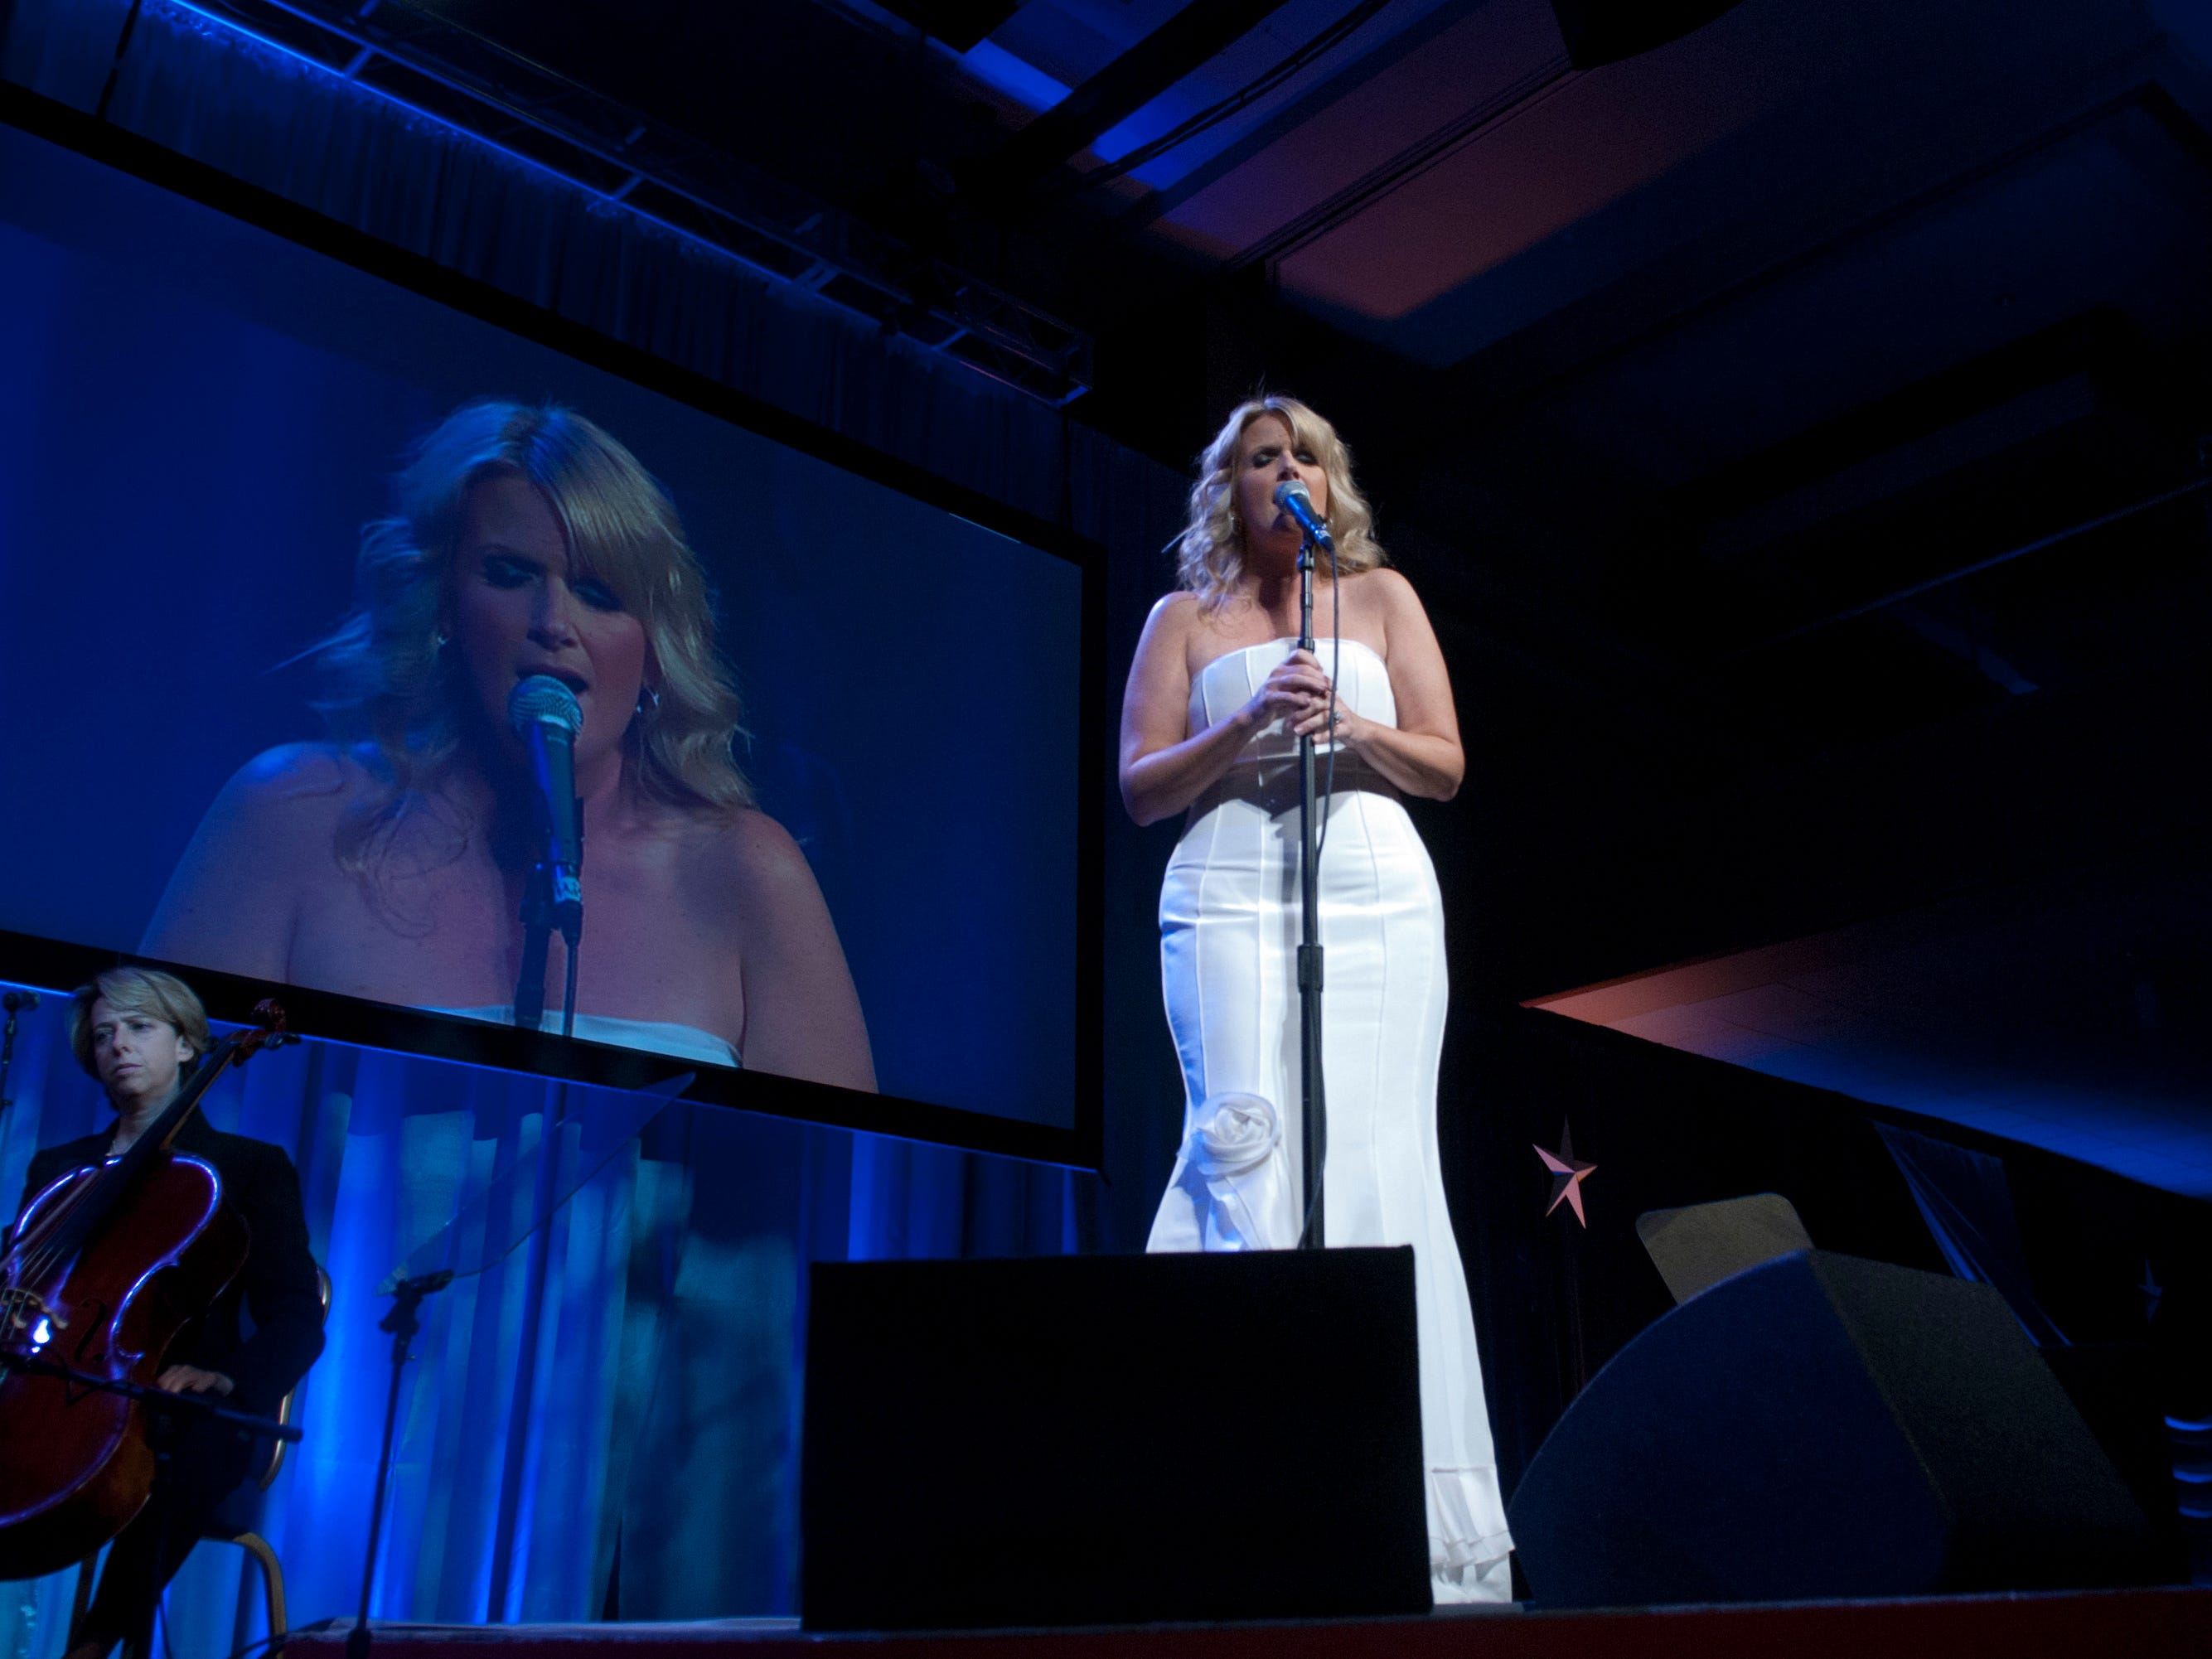 Trisha Yearwood performs during the 2010 USO Gala at Marriot Wardman Park Hotel on October 7, 2010 in Washington DC. (Photo by Kris Connor/Getty Images)